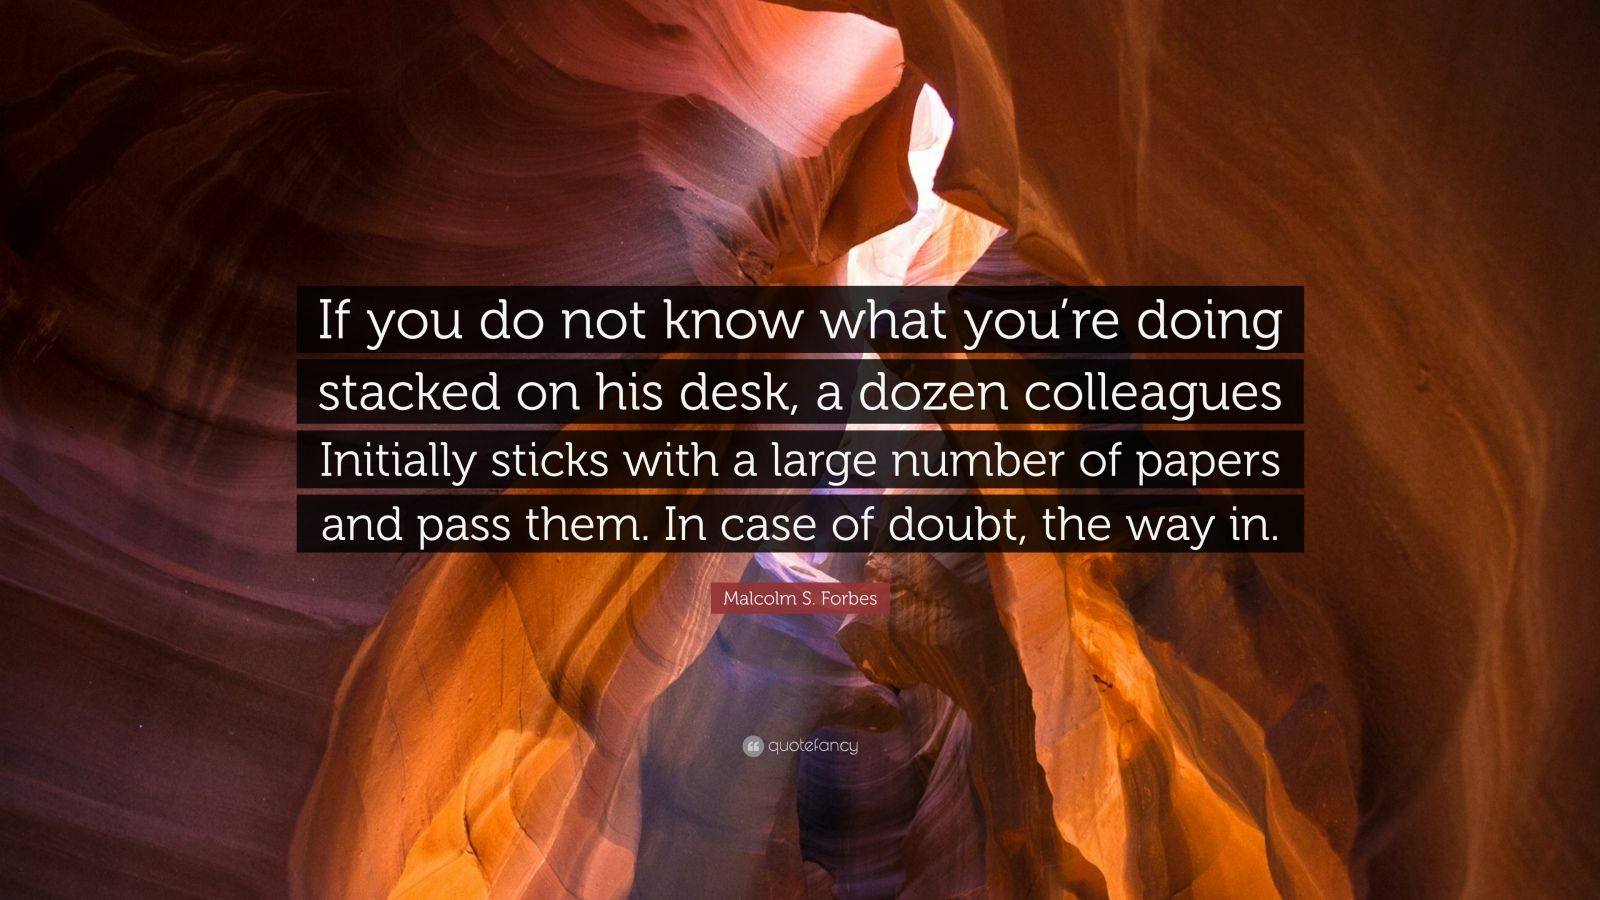 """Malcolm S. Forbes Quote: """"If you do not know what you're doing stacked on his desk, a dozen colleagues Initially sticks with a large number of papers and pass them. In case of doubt, the way in."""""""